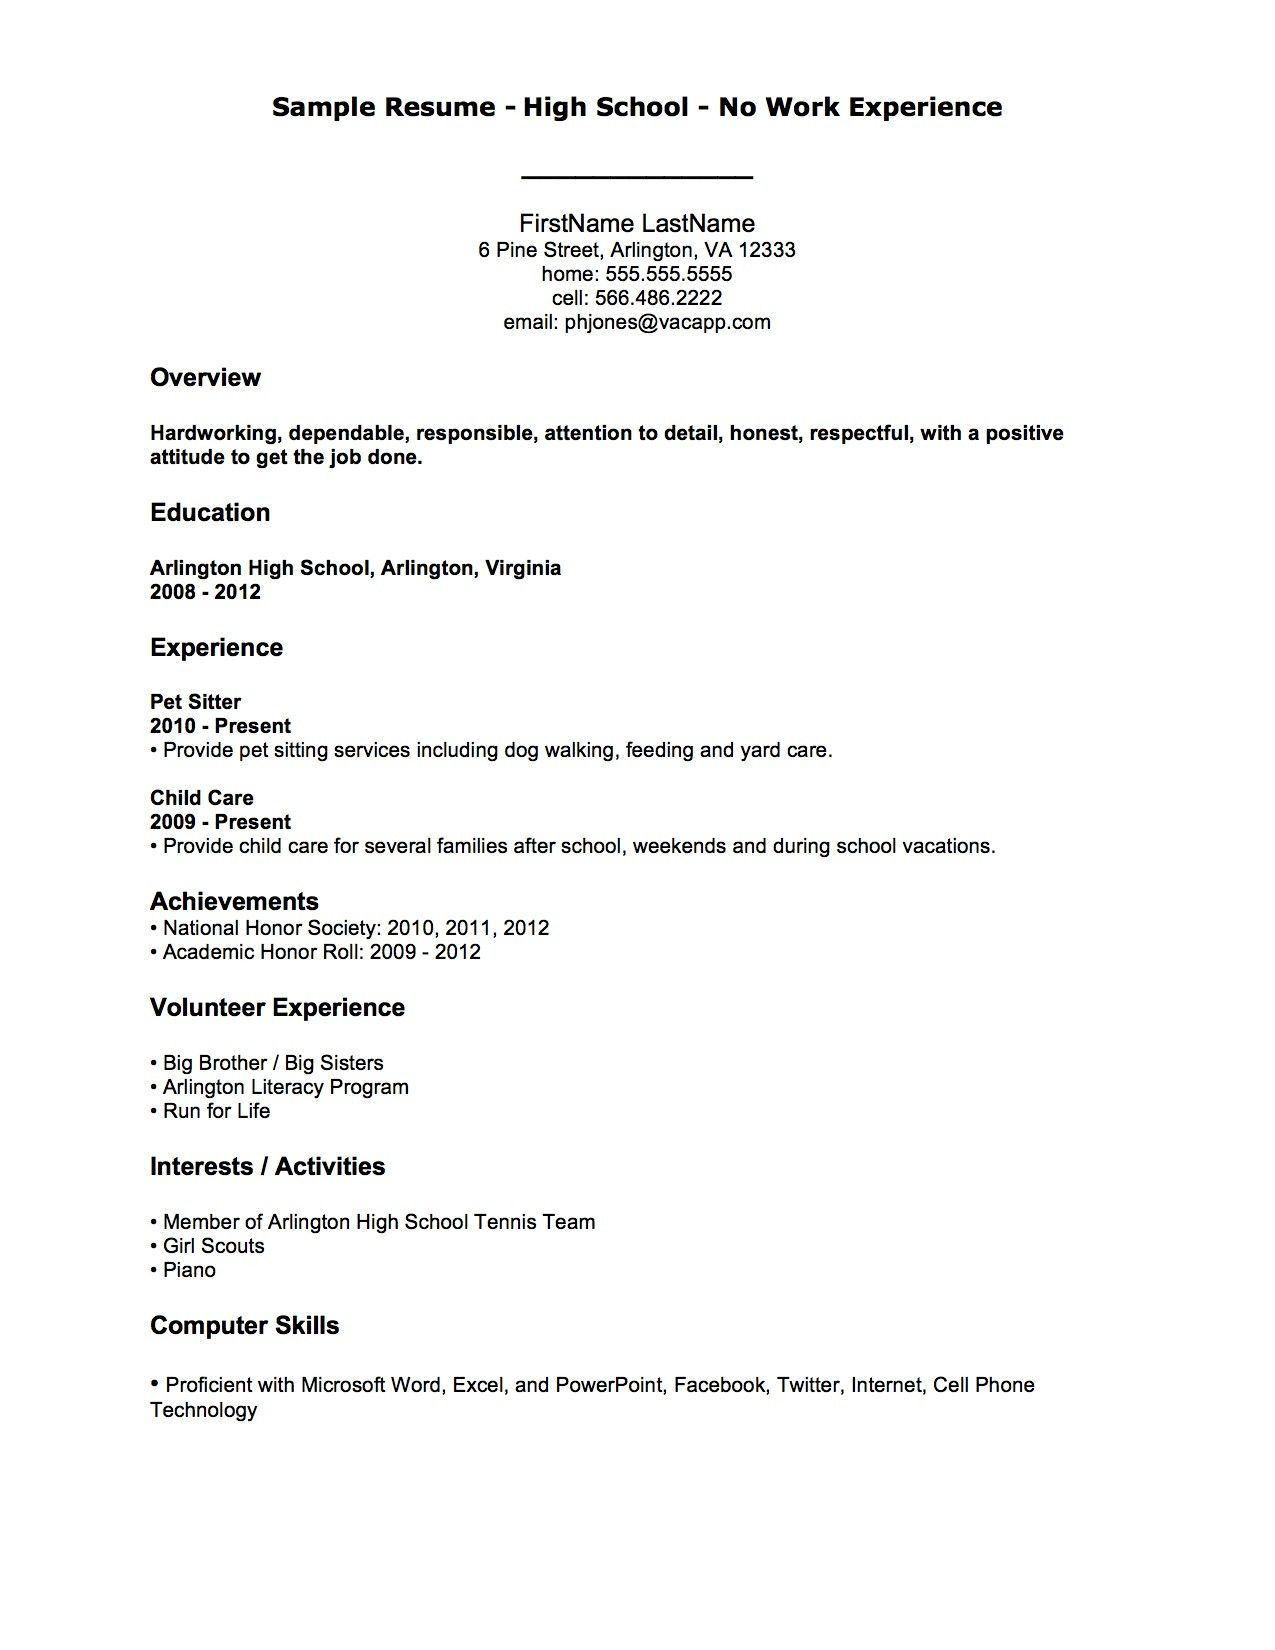 Attractive High School Student Resume Examples No Work Experience 10 Job Resume  Examples No Experience Resume Resume For First Job . On First Job Resume Objective